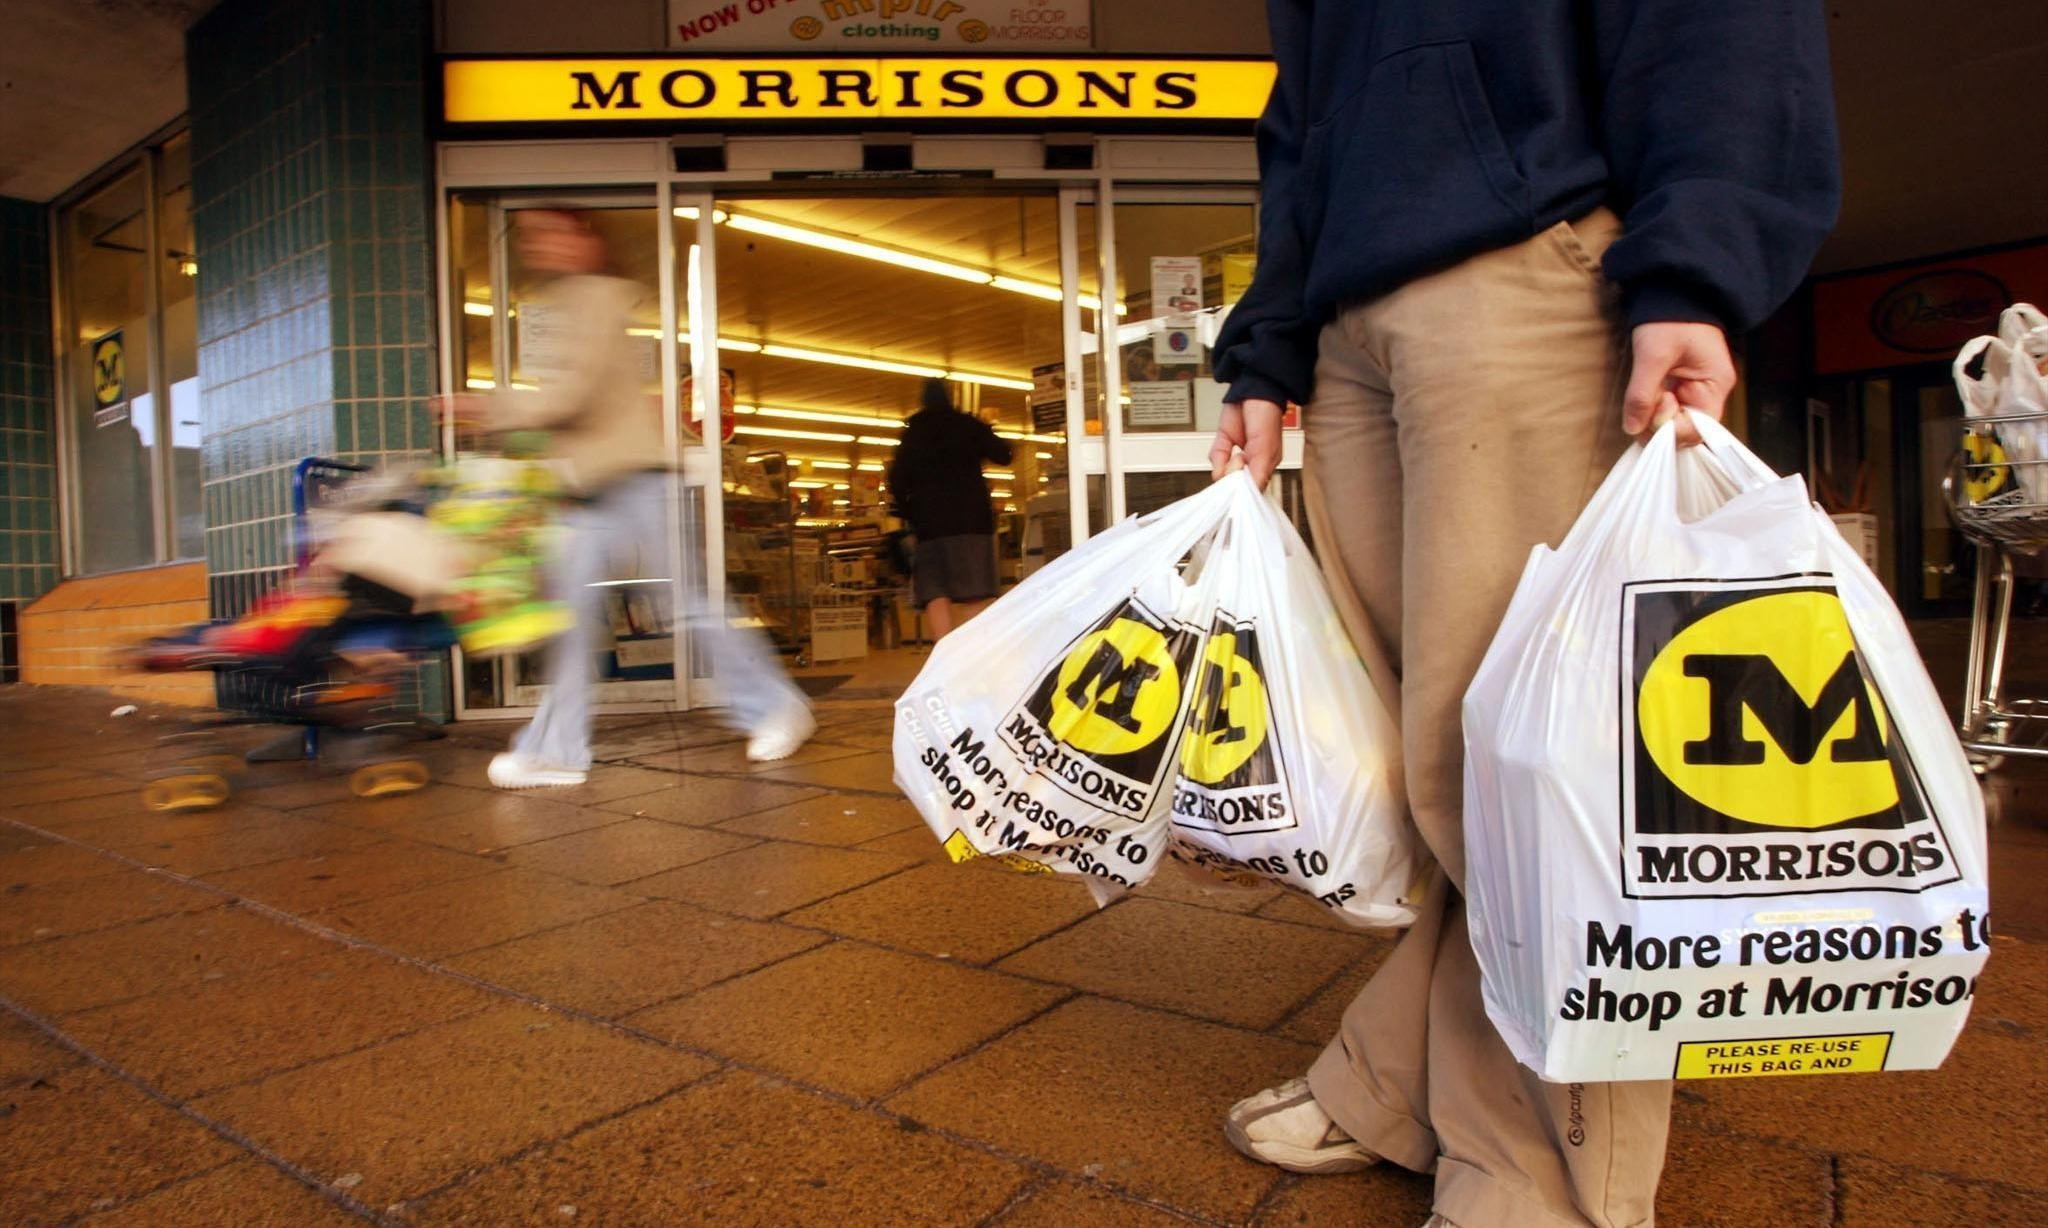 Morrisons closures hit home as central Bradford store shuts